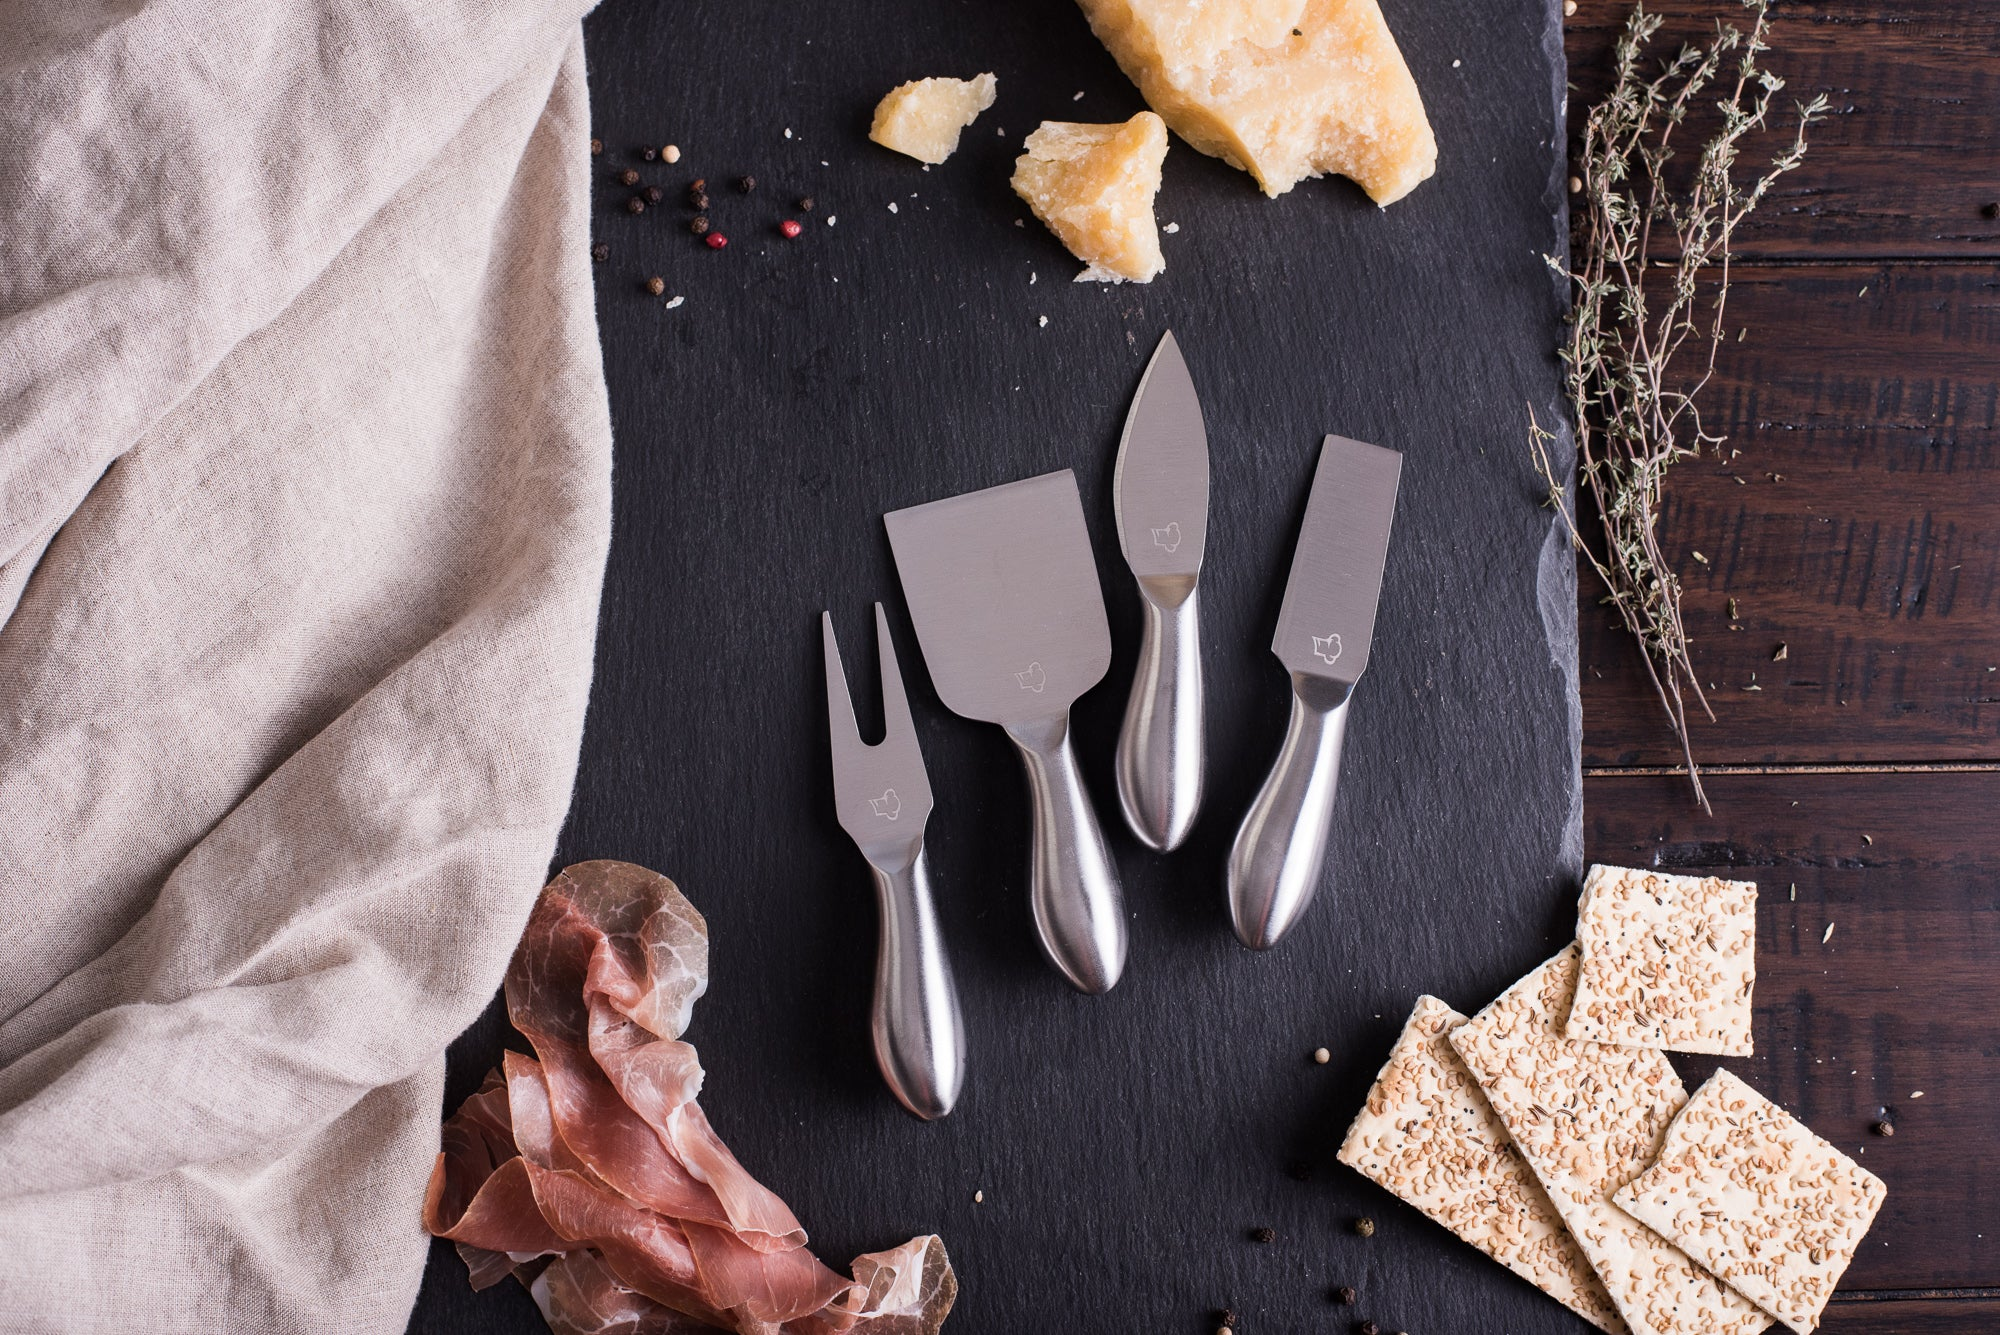 <a target='_blank' href='https://amzn.to/35Z0GwT'>Stainless Steel Cheese Knives - Set of 4</a>